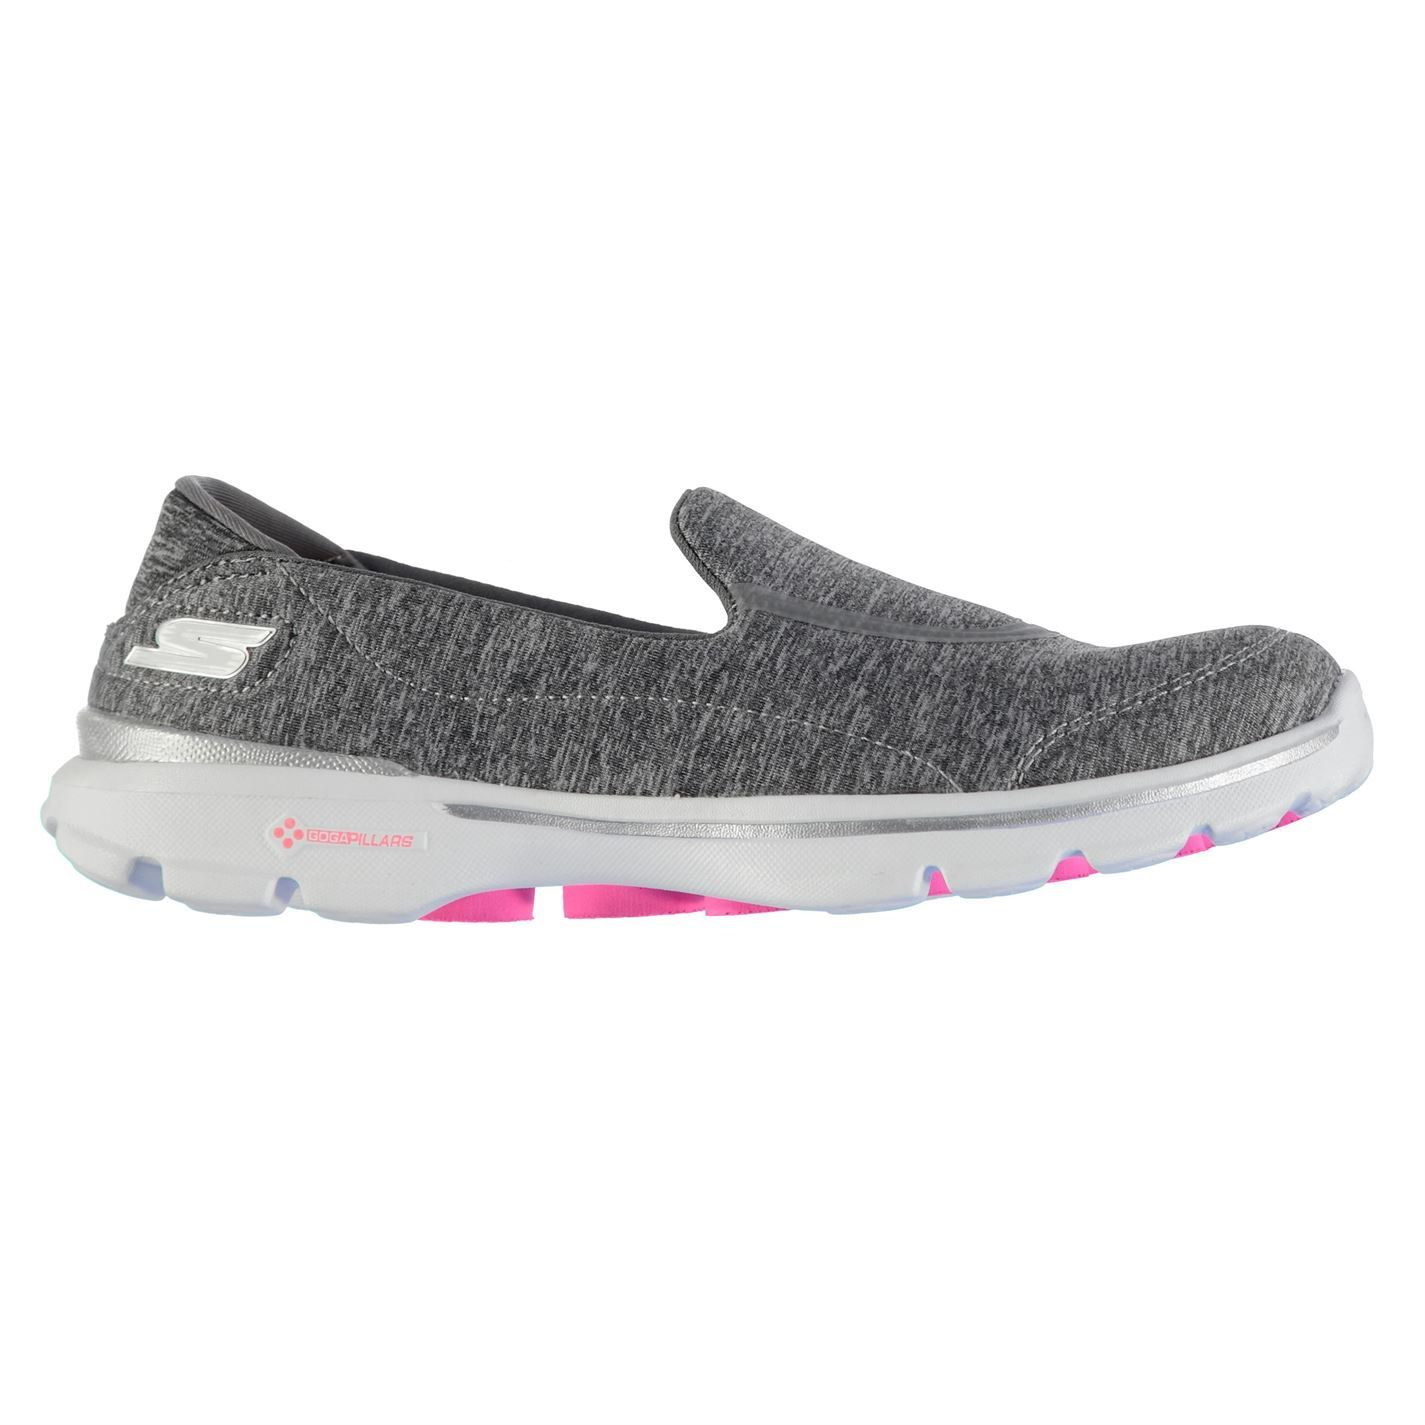 Details about Skechers Womens Go Walk3 Rb Nylon Slip On Casual Textile Shoes f8af328b82